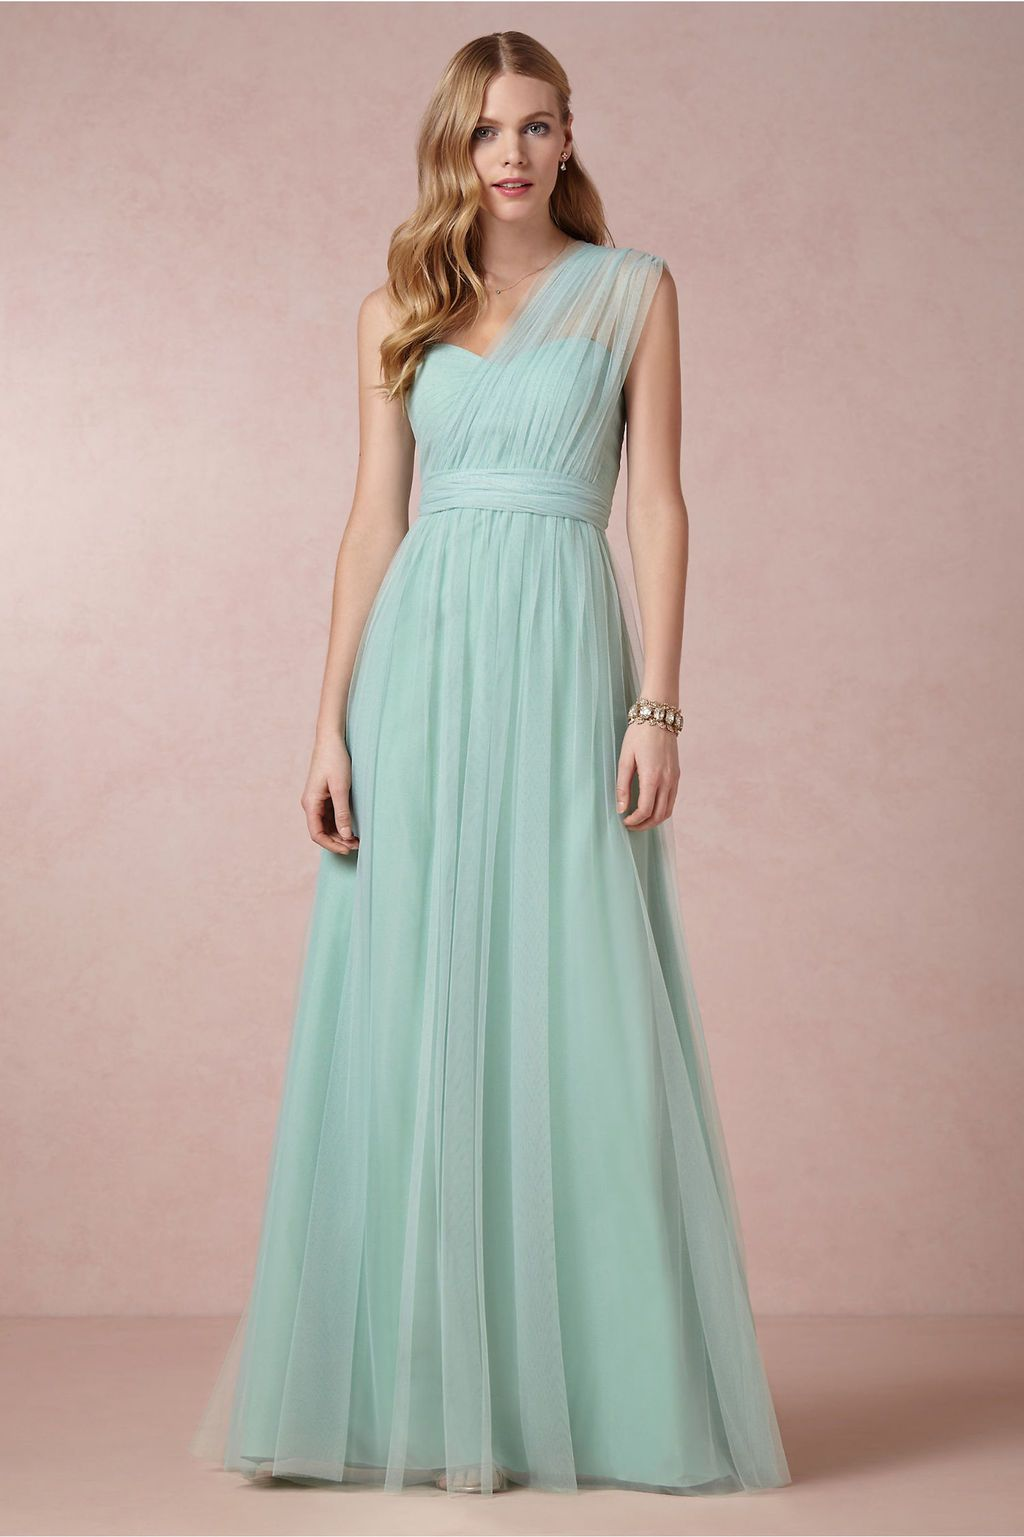 Sheer one shouldered mint bridesmaid dress mint bridesmaid dress sheer one shouldered mint bridesmaid dress ombrellifo Image collections